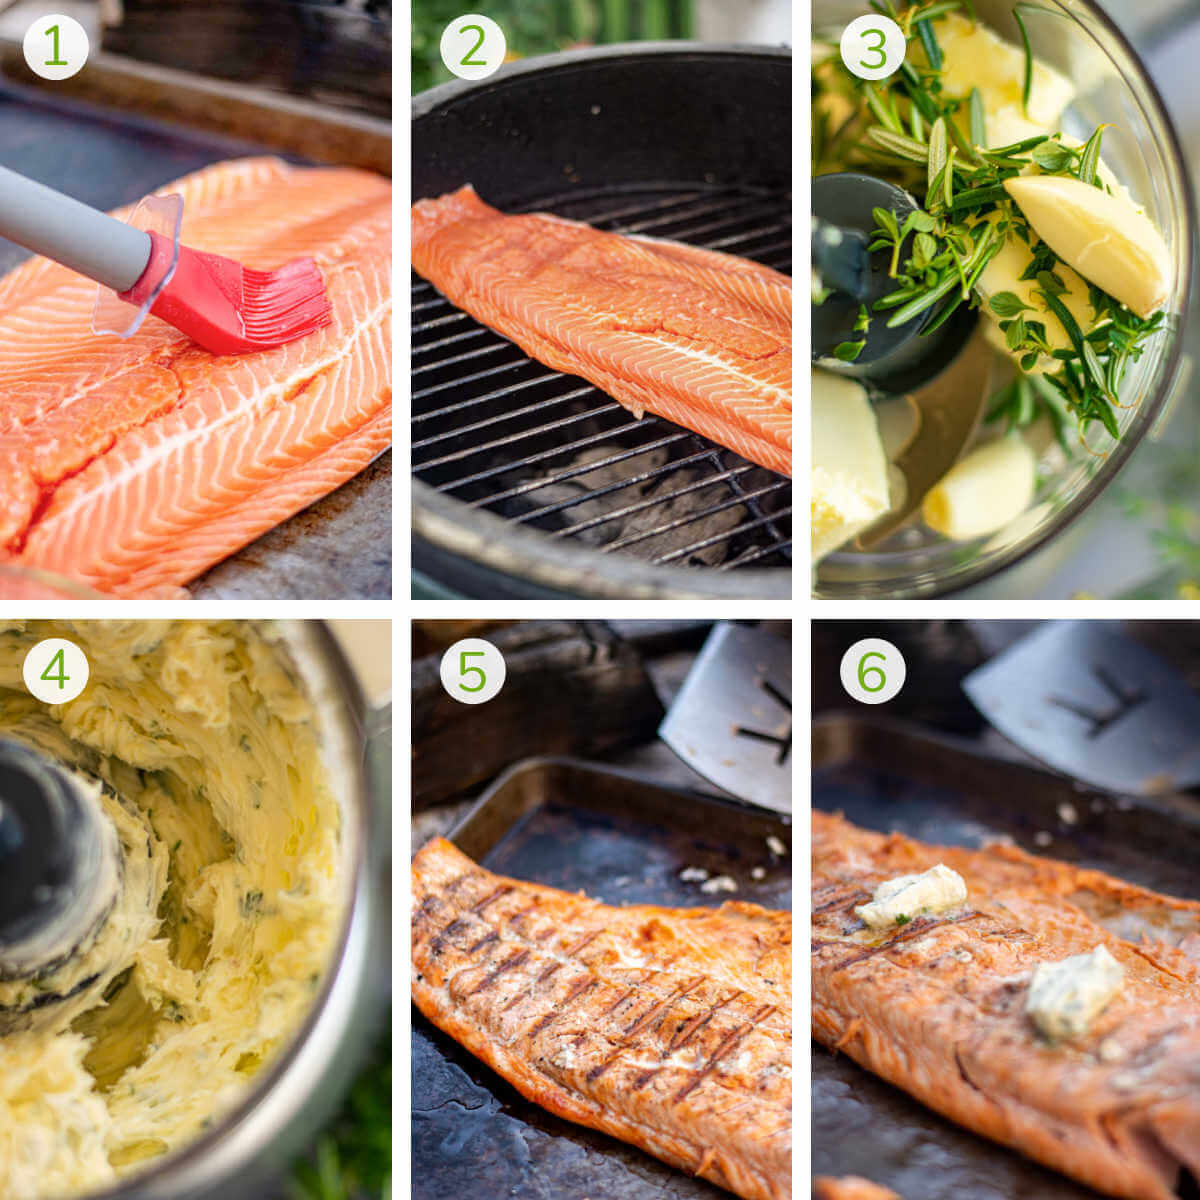 process photos showing brushing the fillet, adding it to the grill, making the butter, and then removing and serving.